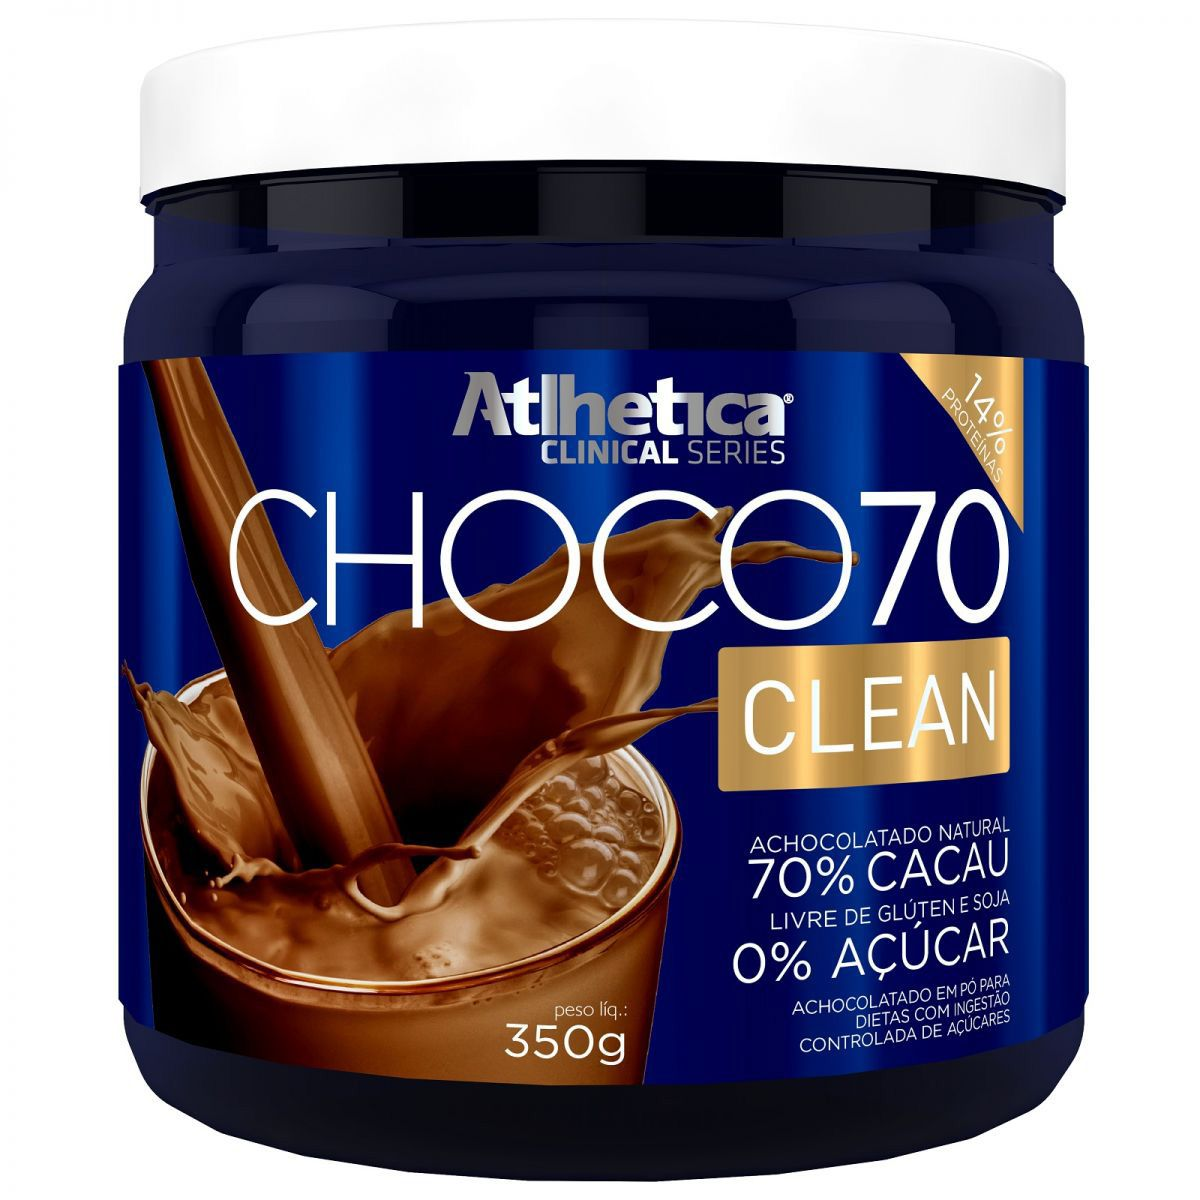 Choco70 Clean 350g Achocolatado Natural - Atlhetica Nutrition